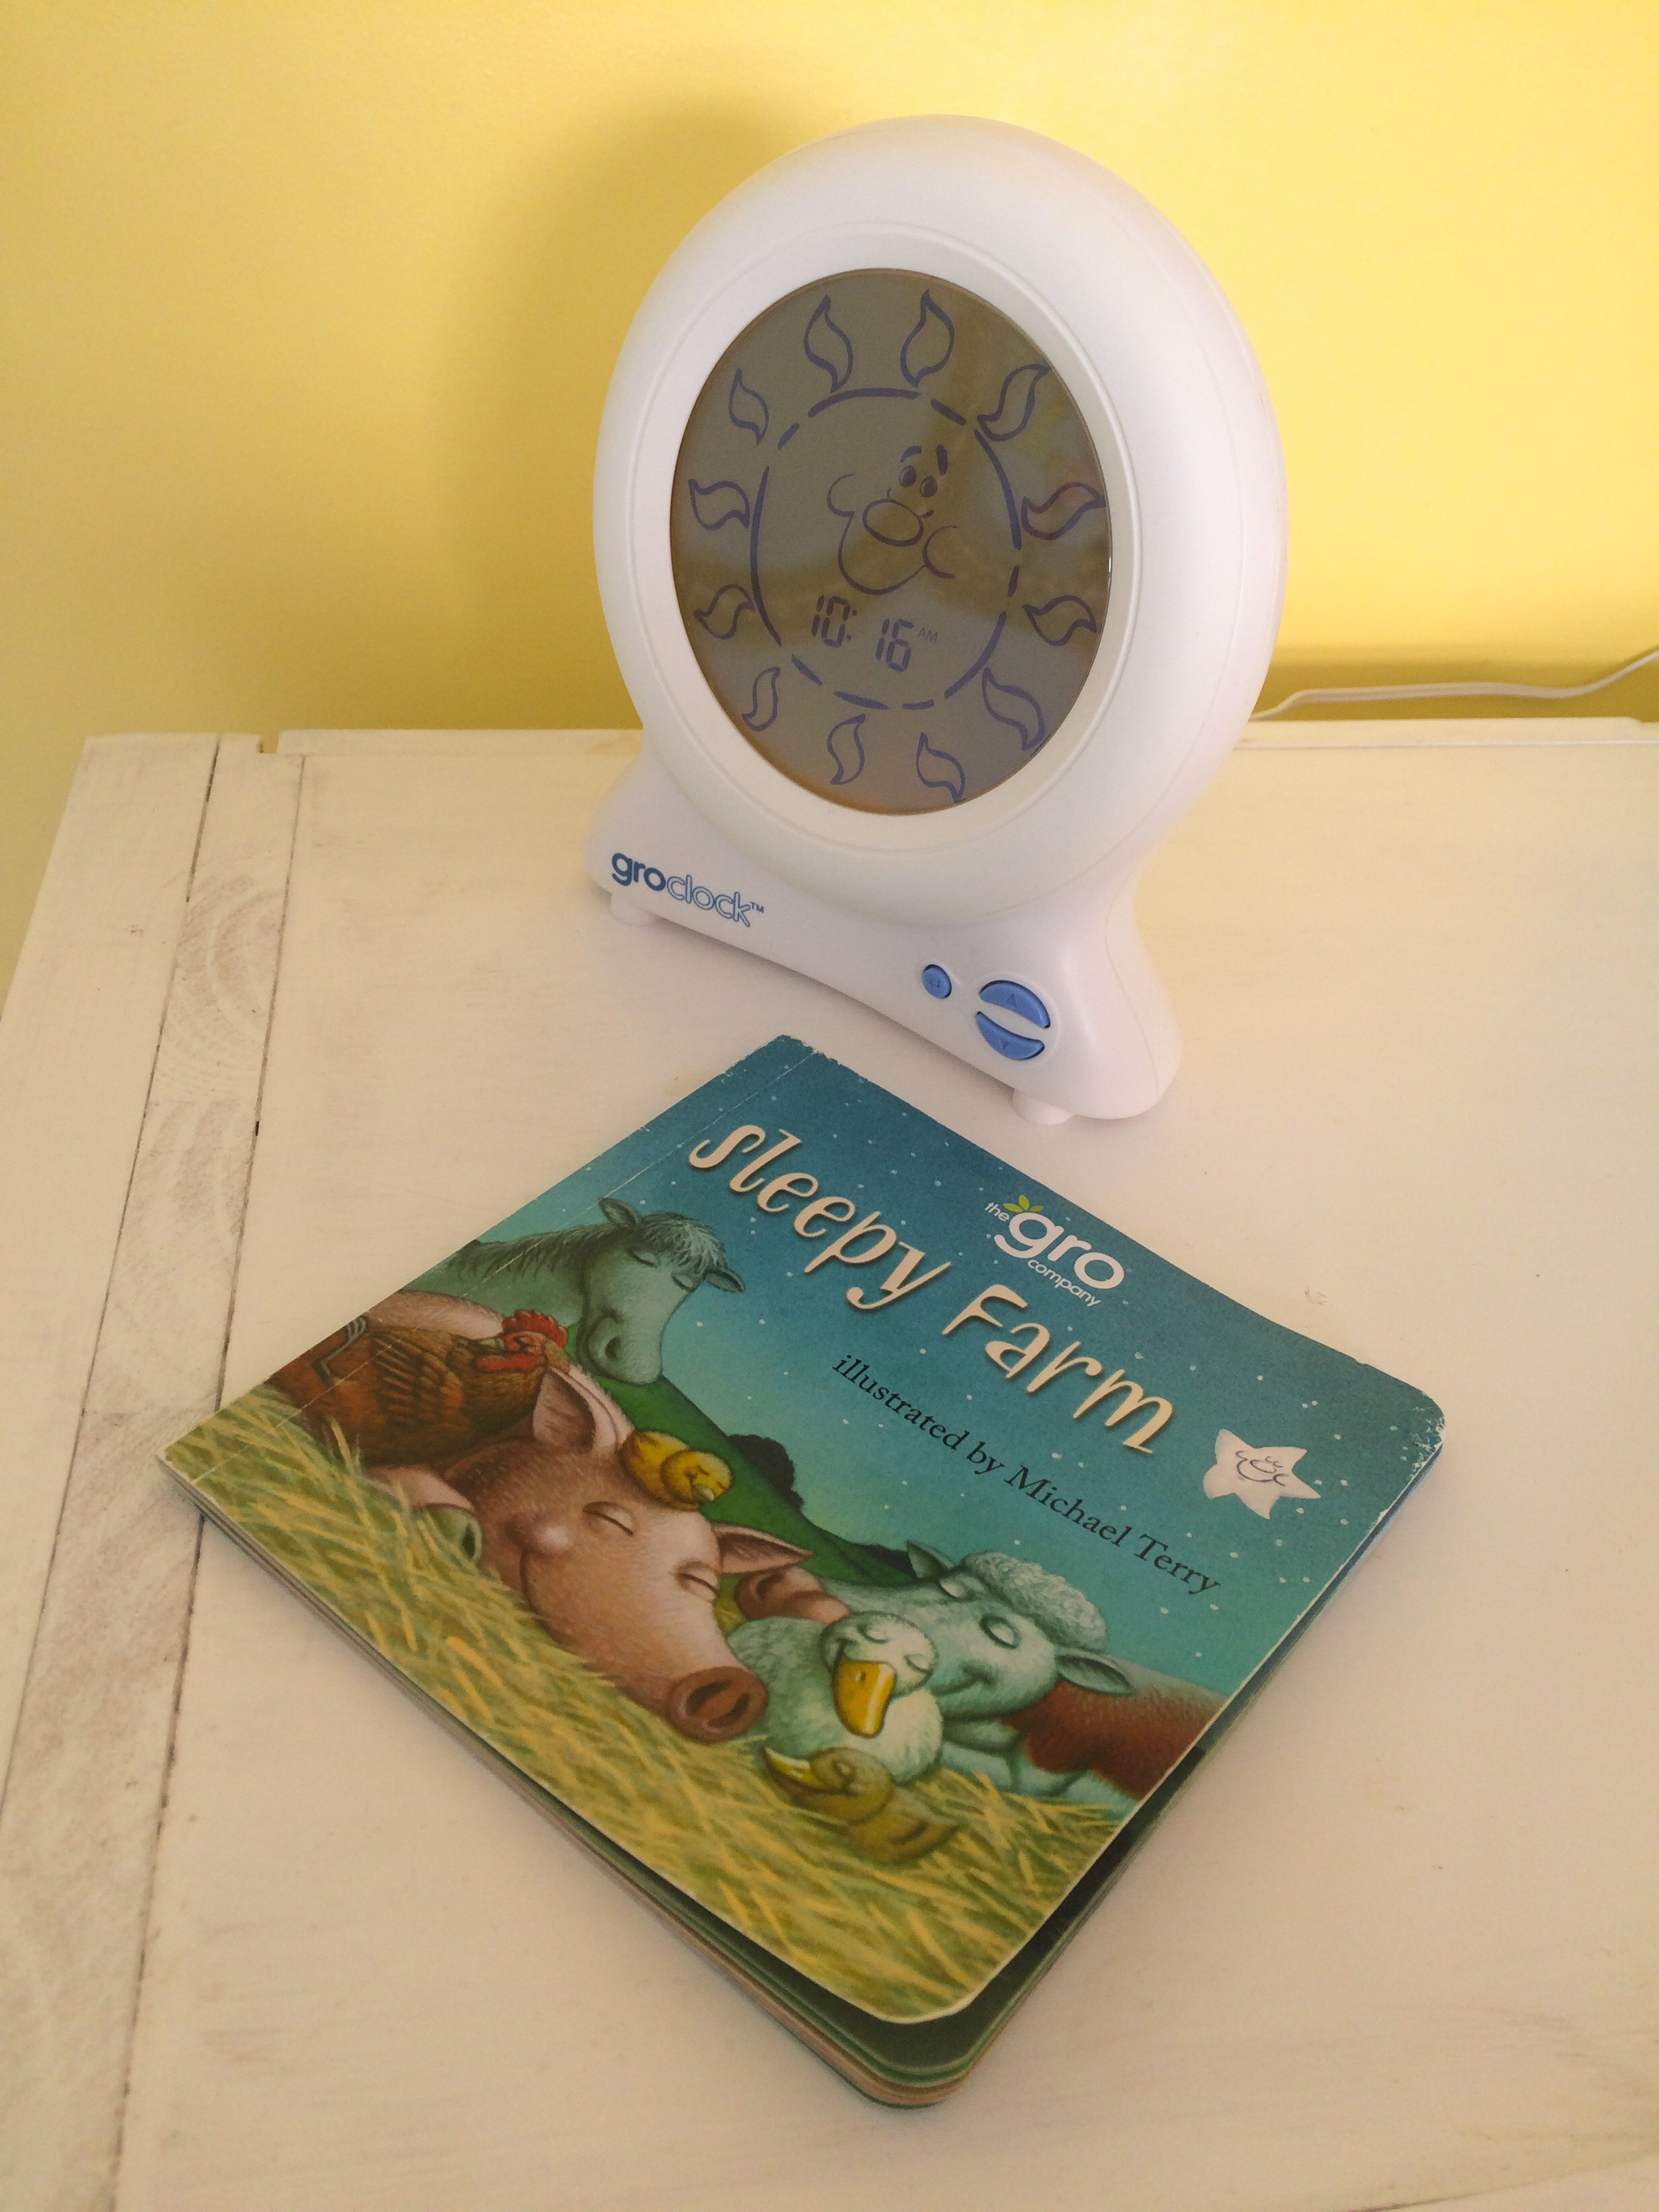 The Gro Company - Gro Clock Review